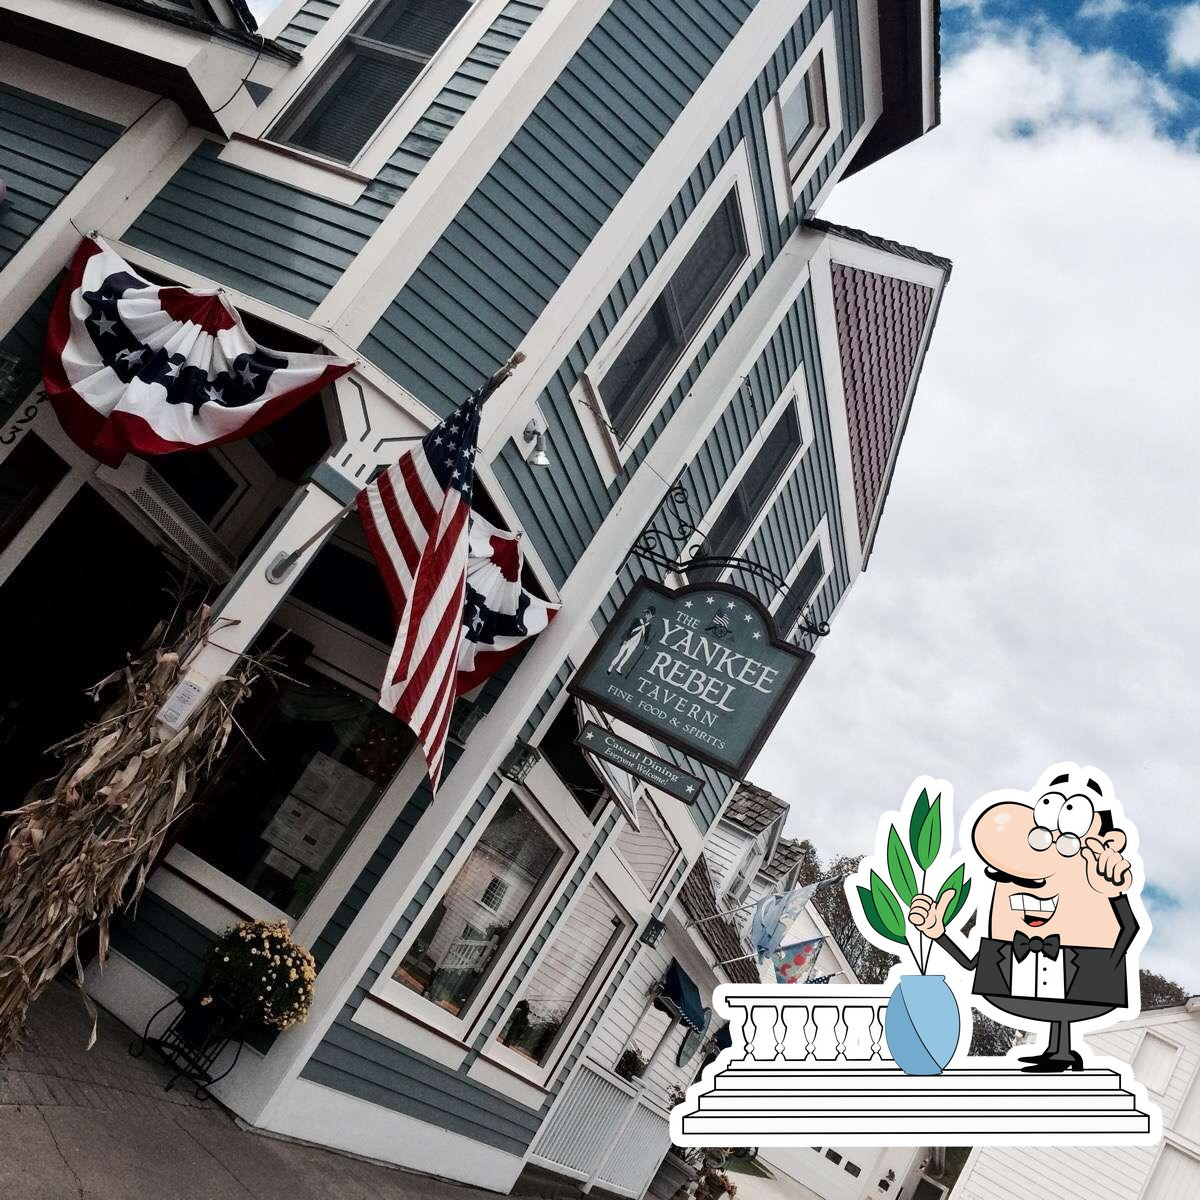 Check out the exterior of Yankee Rebel Tavern